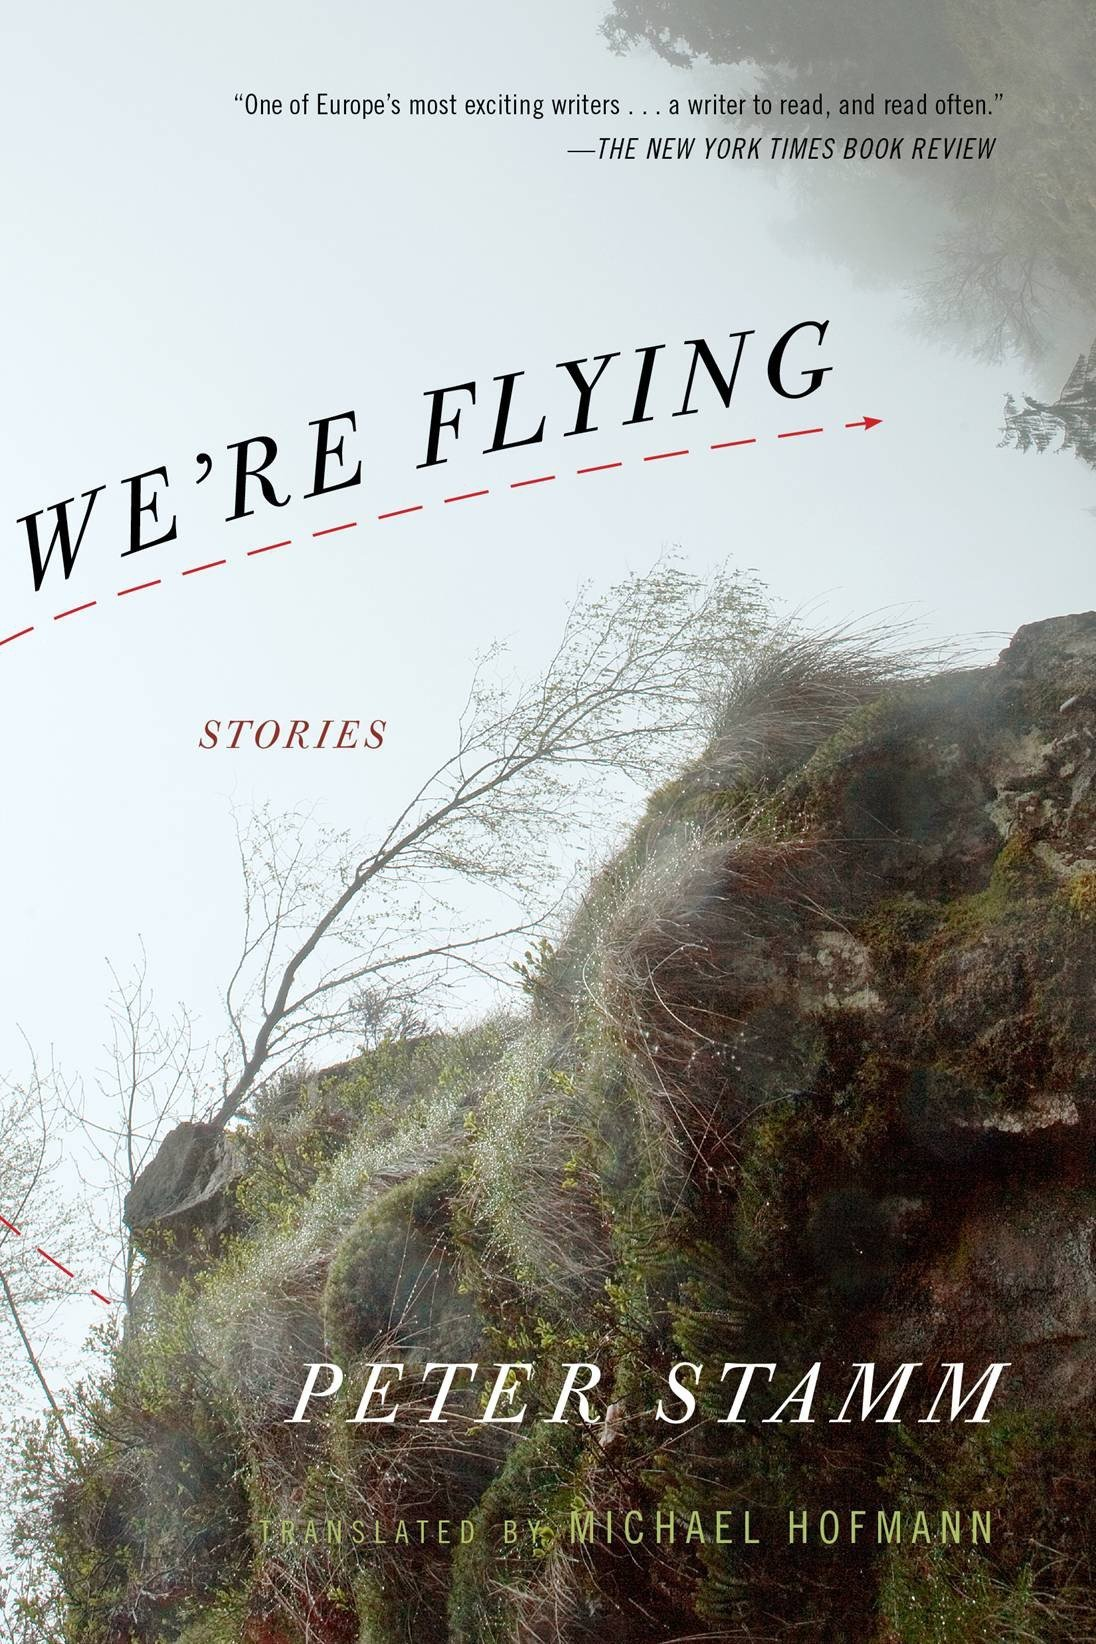 We're Flying: Peter Stamm, Michael Hofmann: 9781590513248: Amazon.com: Books